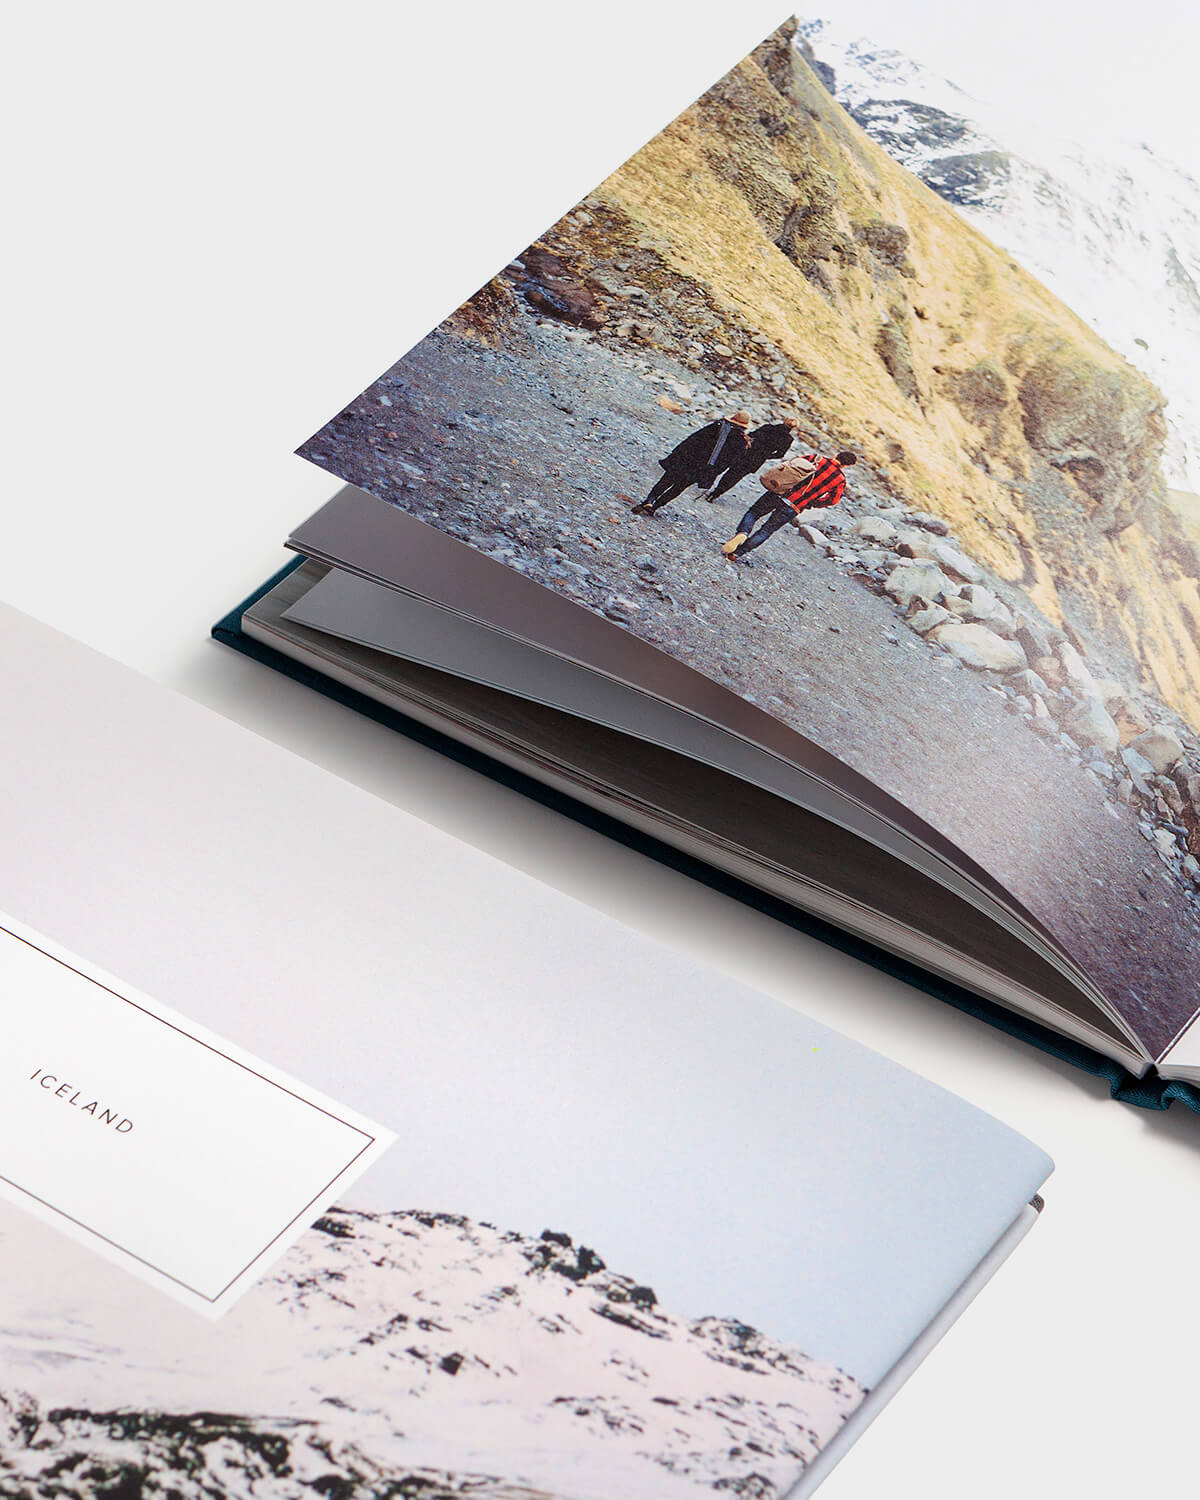 hardcover photo book containing photos of trip to Iceland